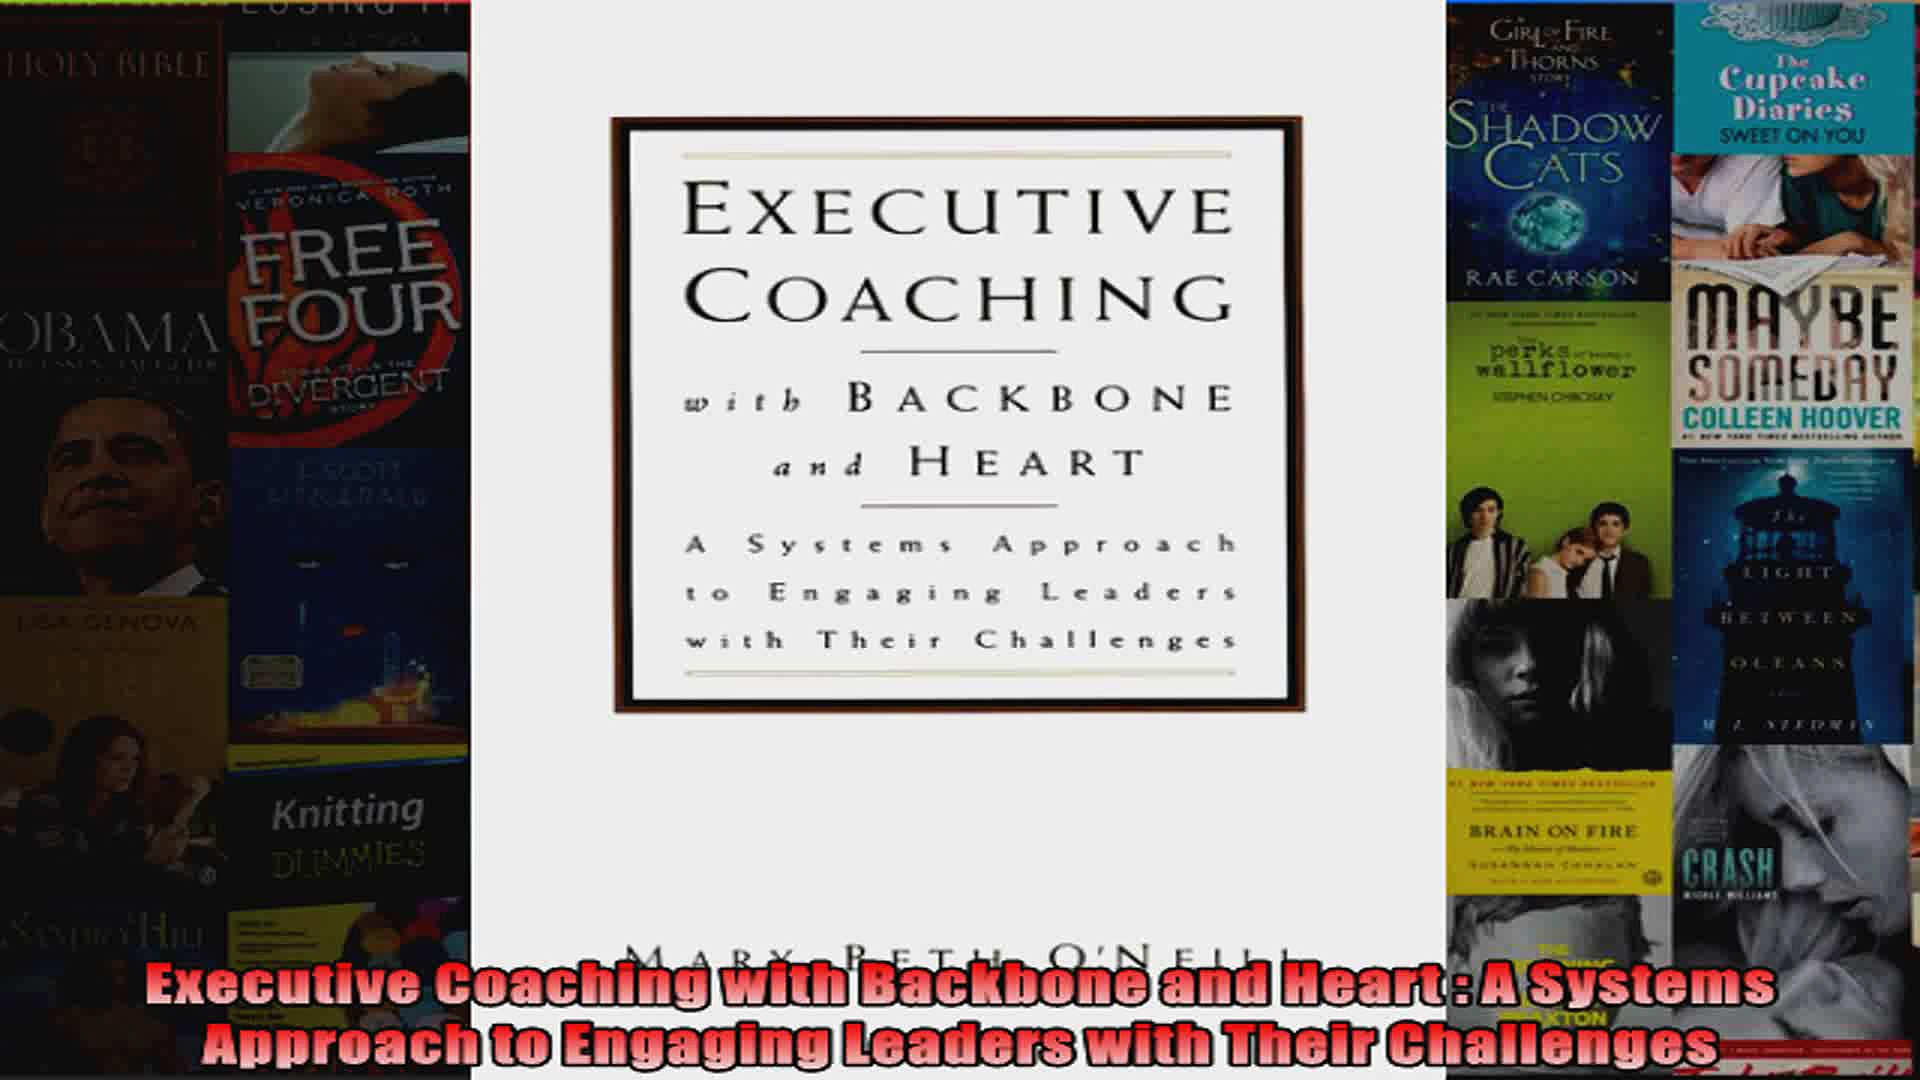 Executive Coaching with Backbone and Heart  A Systems Approach to Engaging Leaders with